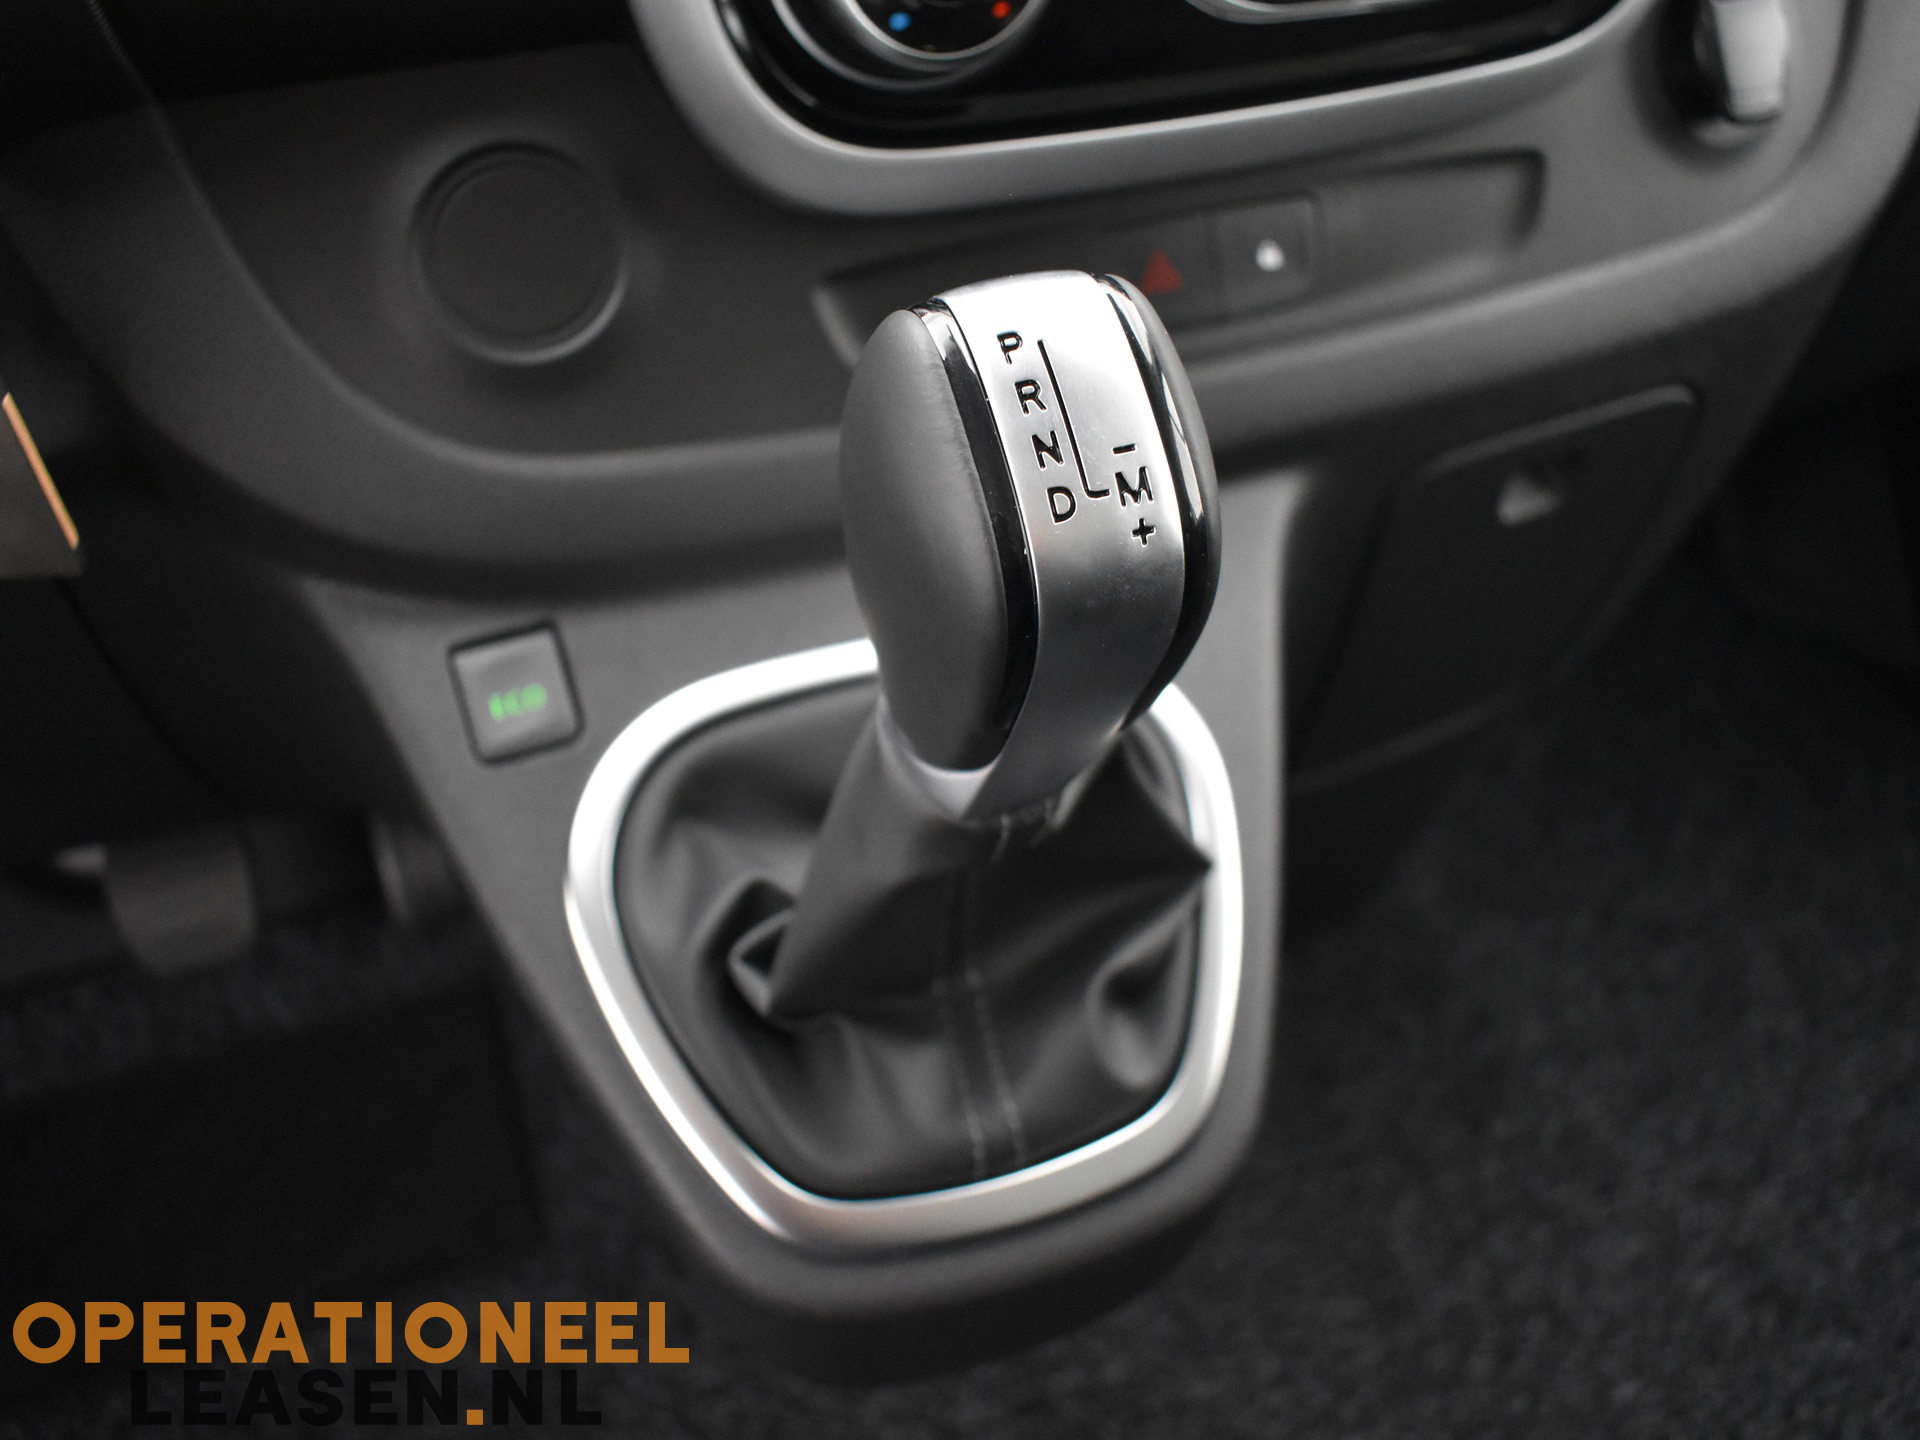 Operational lease Renault master traffic-17